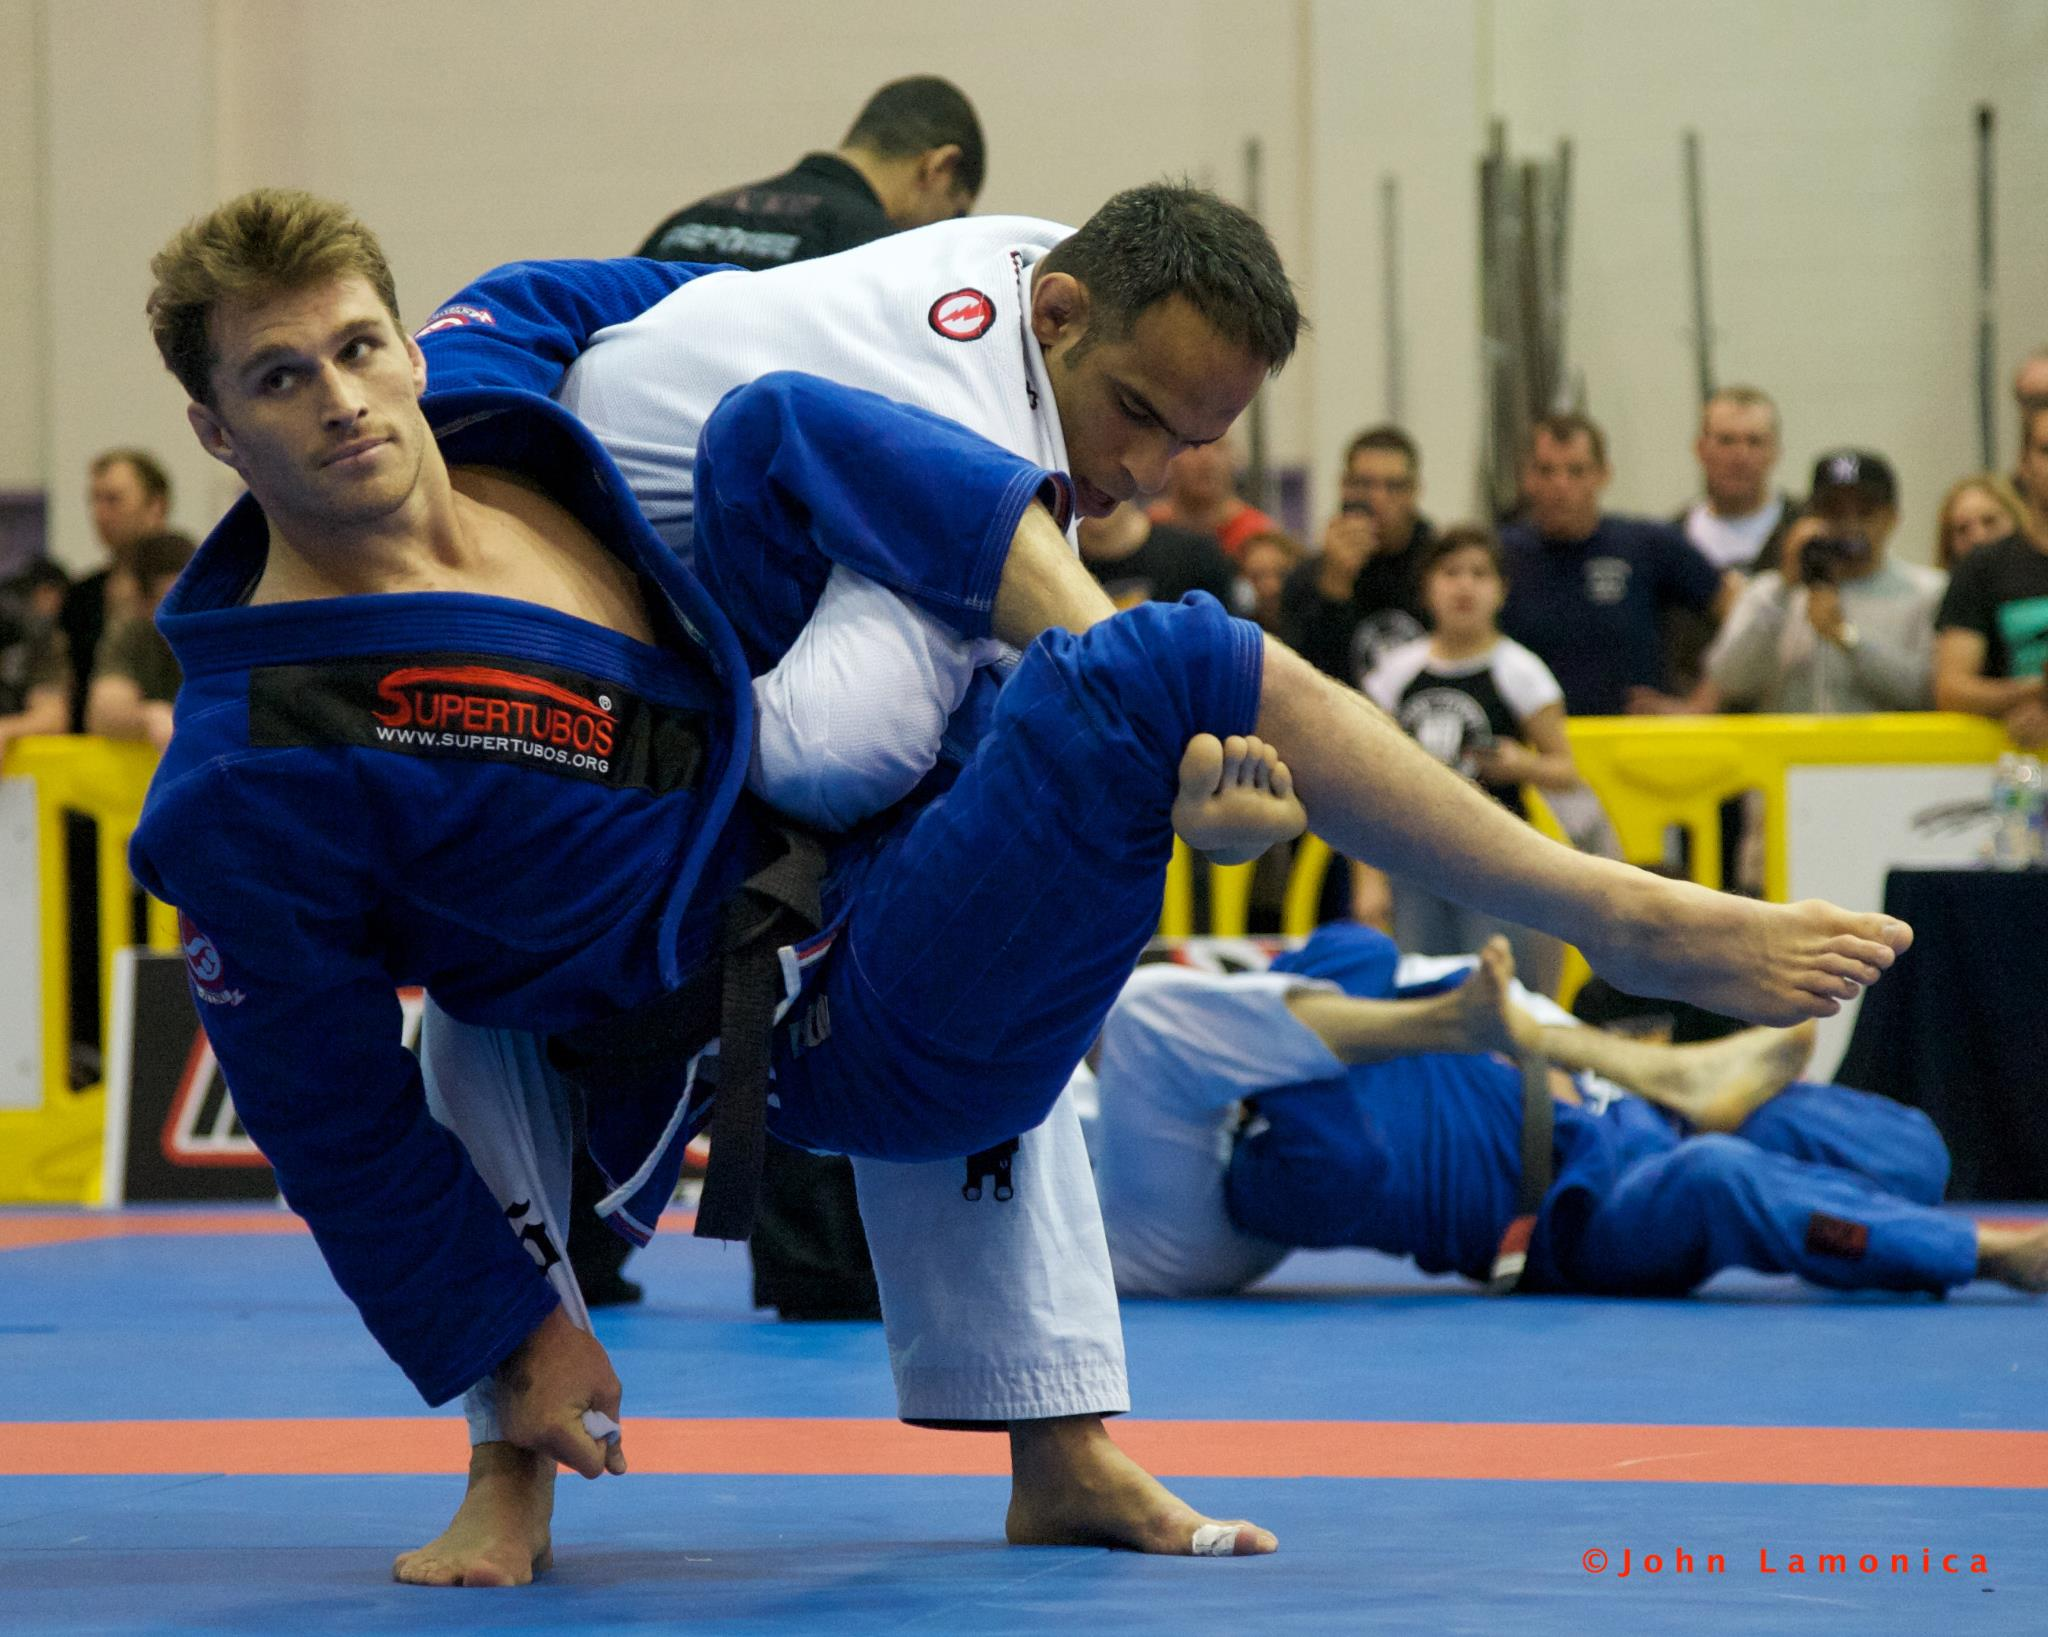 Martial Arts Ridiculously Photogenic Jiu-Jitsu Guy